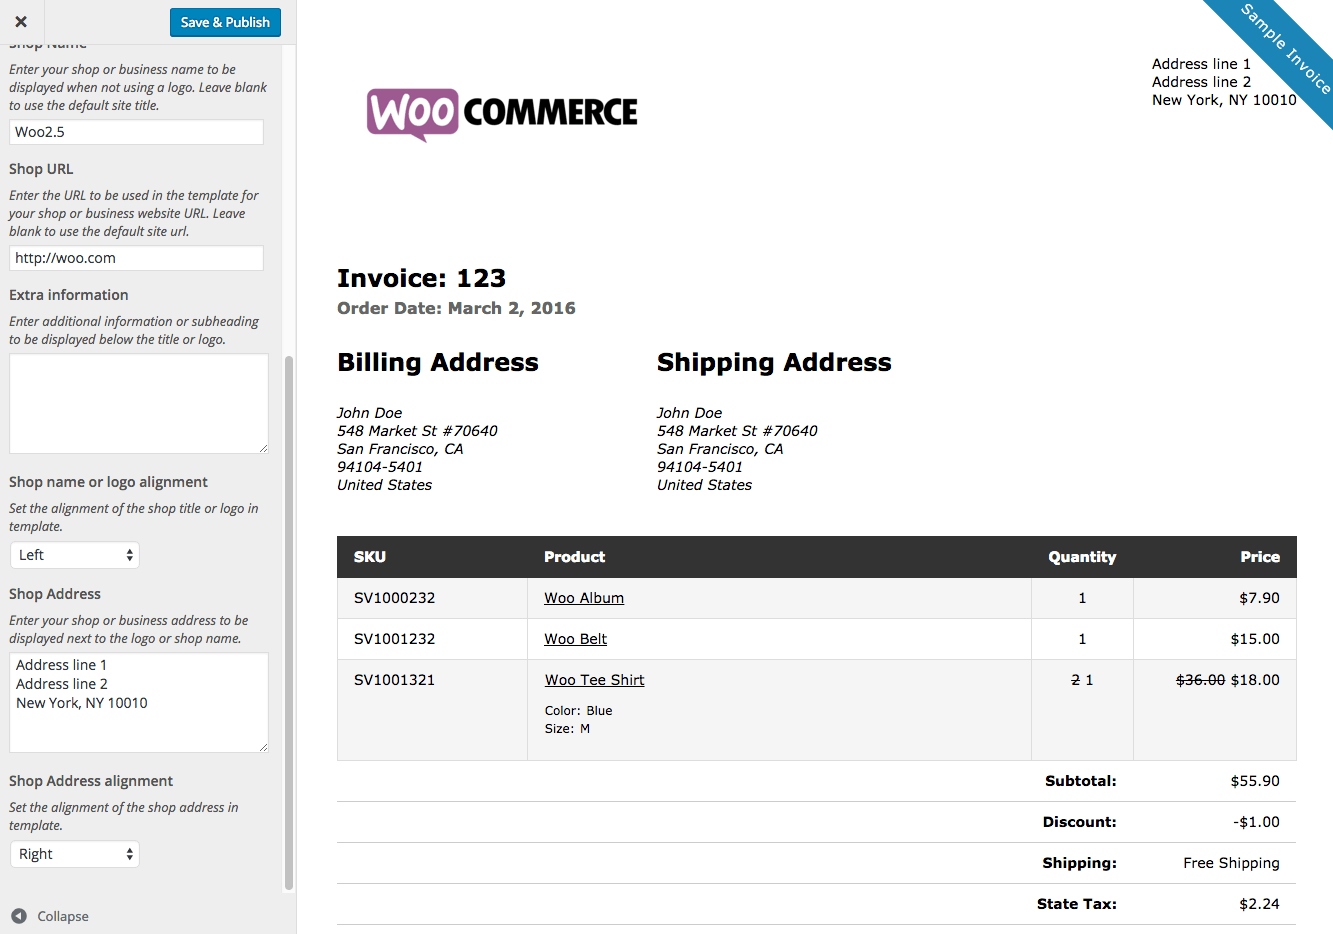 Musclebuildingtipsus  Winning Print Invoices Amp Packing Lists  Woocommerce With Glamorous Woocommerce Print Invoices  Packing Lists Customizer With Charming Free Business Invoice Template Also Automotive Repair Invoice In Addition Invoice Template Mac And Electronic Invoice Presentment And Payment As Well As Invoice For Payment Additionally Free Service Invoice Template From Woocommercecom With Musclebuildingtipsus  Glamorous Print Invoices Amp Packing Lists  Woocommerce With Charming Woocommerce Print Invoices  Packing Lists Customizer And Winning Free Business Invoice Template Also Automotive Repair Invoice In Addition Invoice Template Mac From Woocommercecom